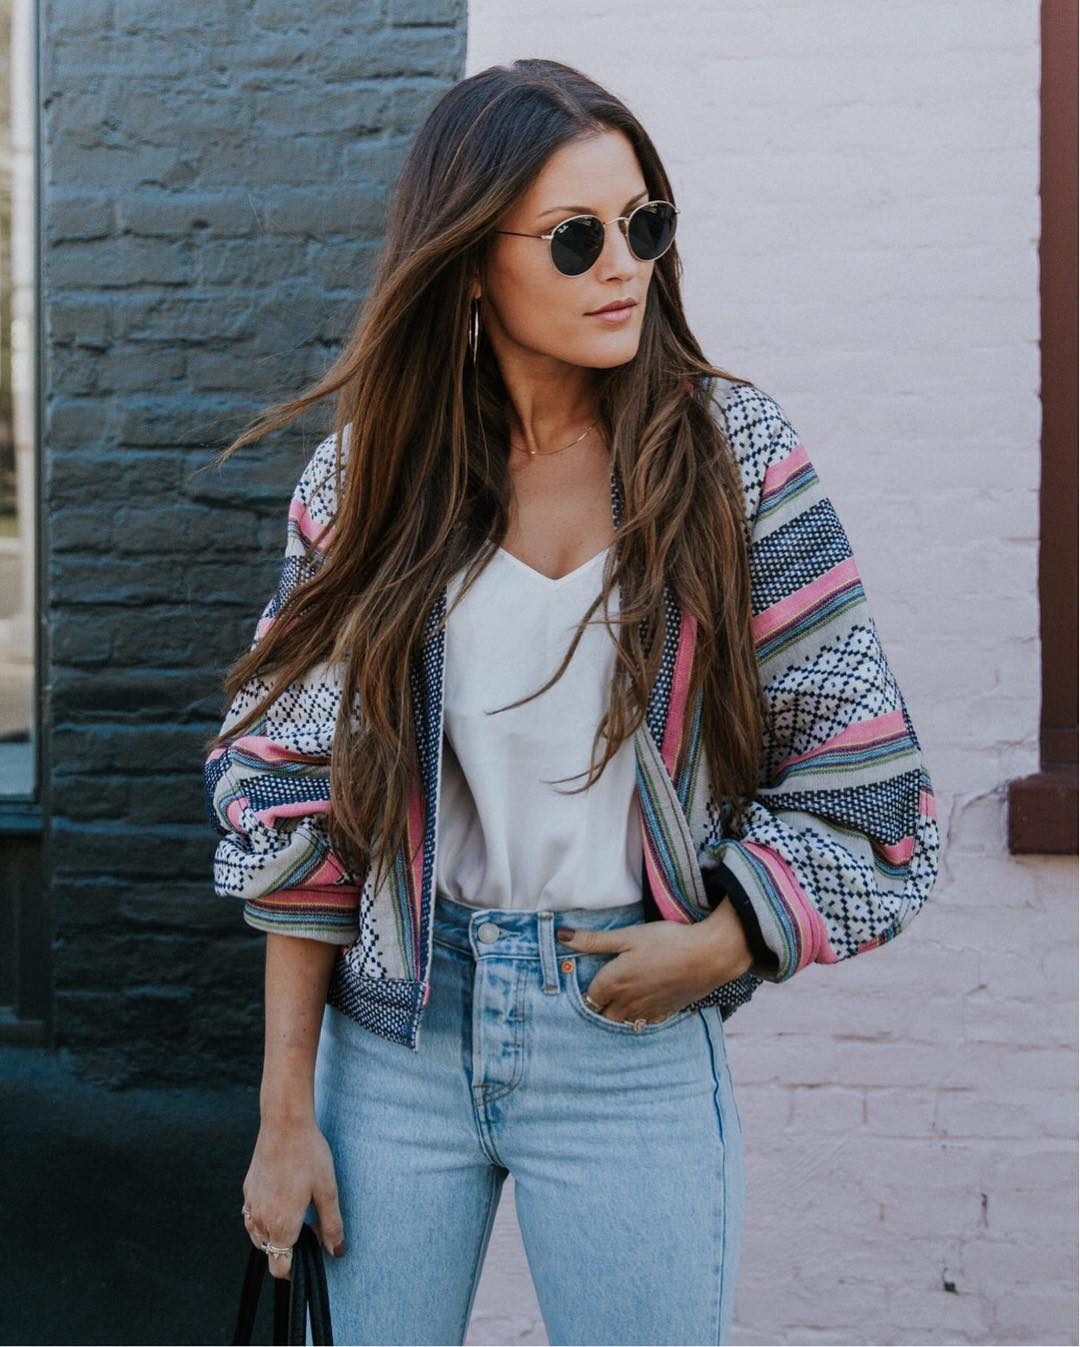 The new york vanity was named perfectly it has that city chic look - A New York Based Fashion Blogger With A Bohemian Edge Lindsay Marcella Has A Knack For Pulling Off Cozy Knits And Trendy Off The Shoulder Tops